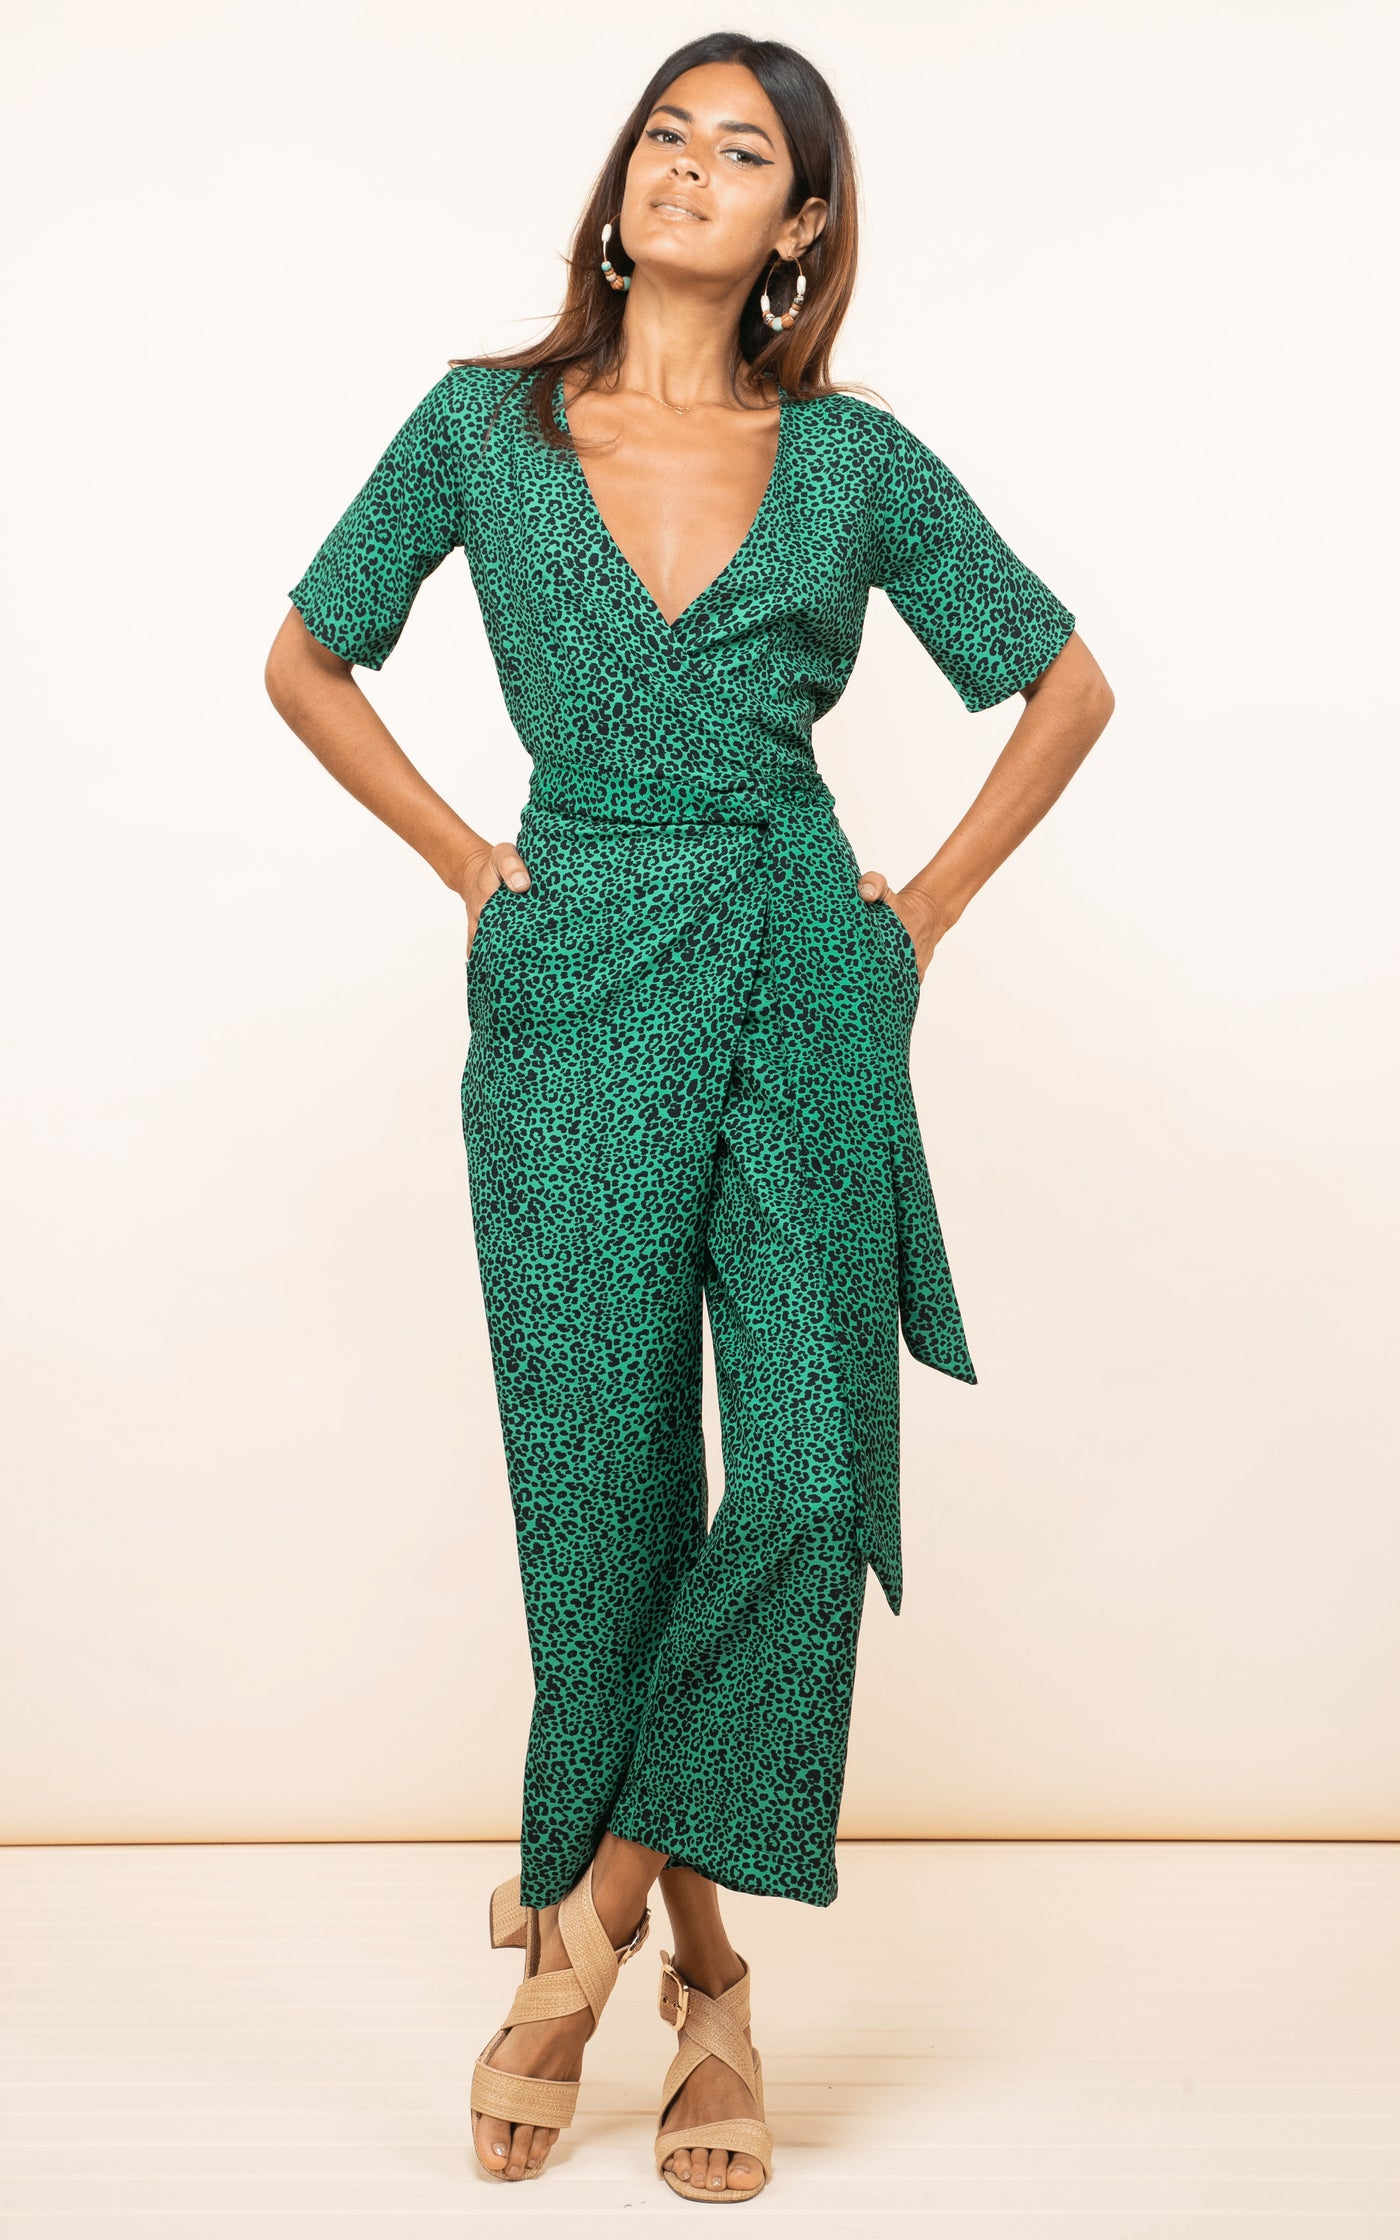 Dancing Leopard model faces forward wearing Atlantis Wrap Jumpsuit in green leopard print with hands in pockets